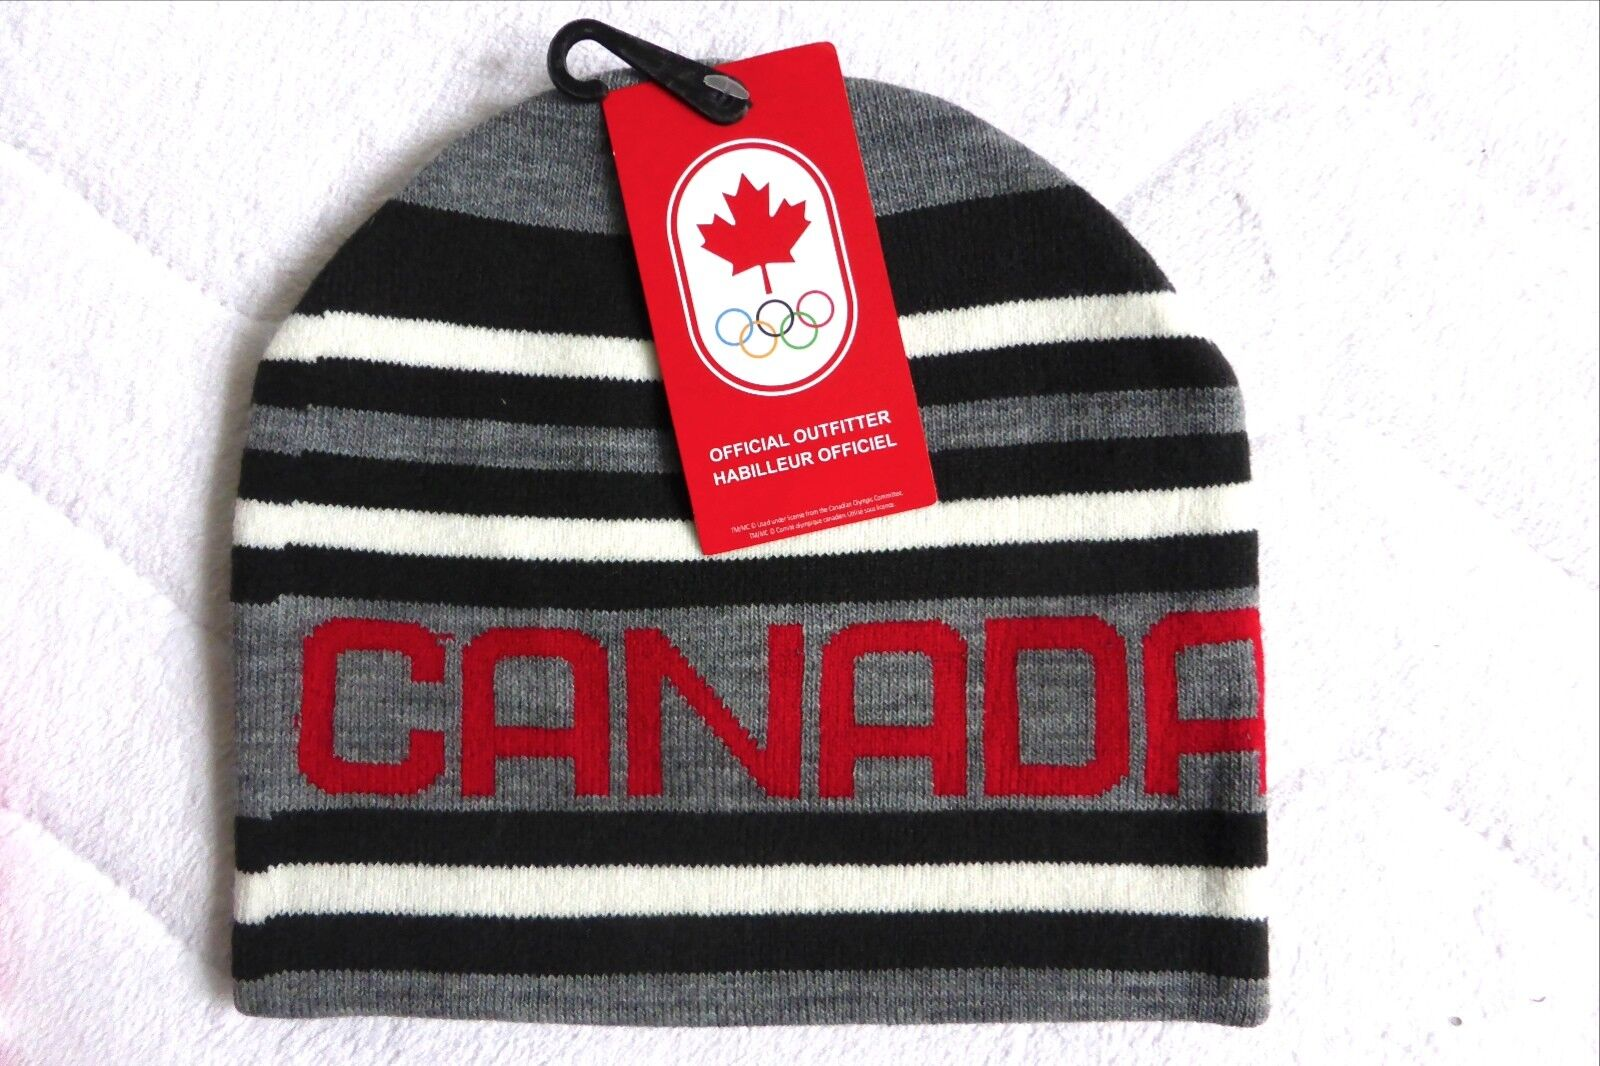 961bae1c19f 2018 Adult Canada Winter Olympics Official Beanie Hat Toque Nes